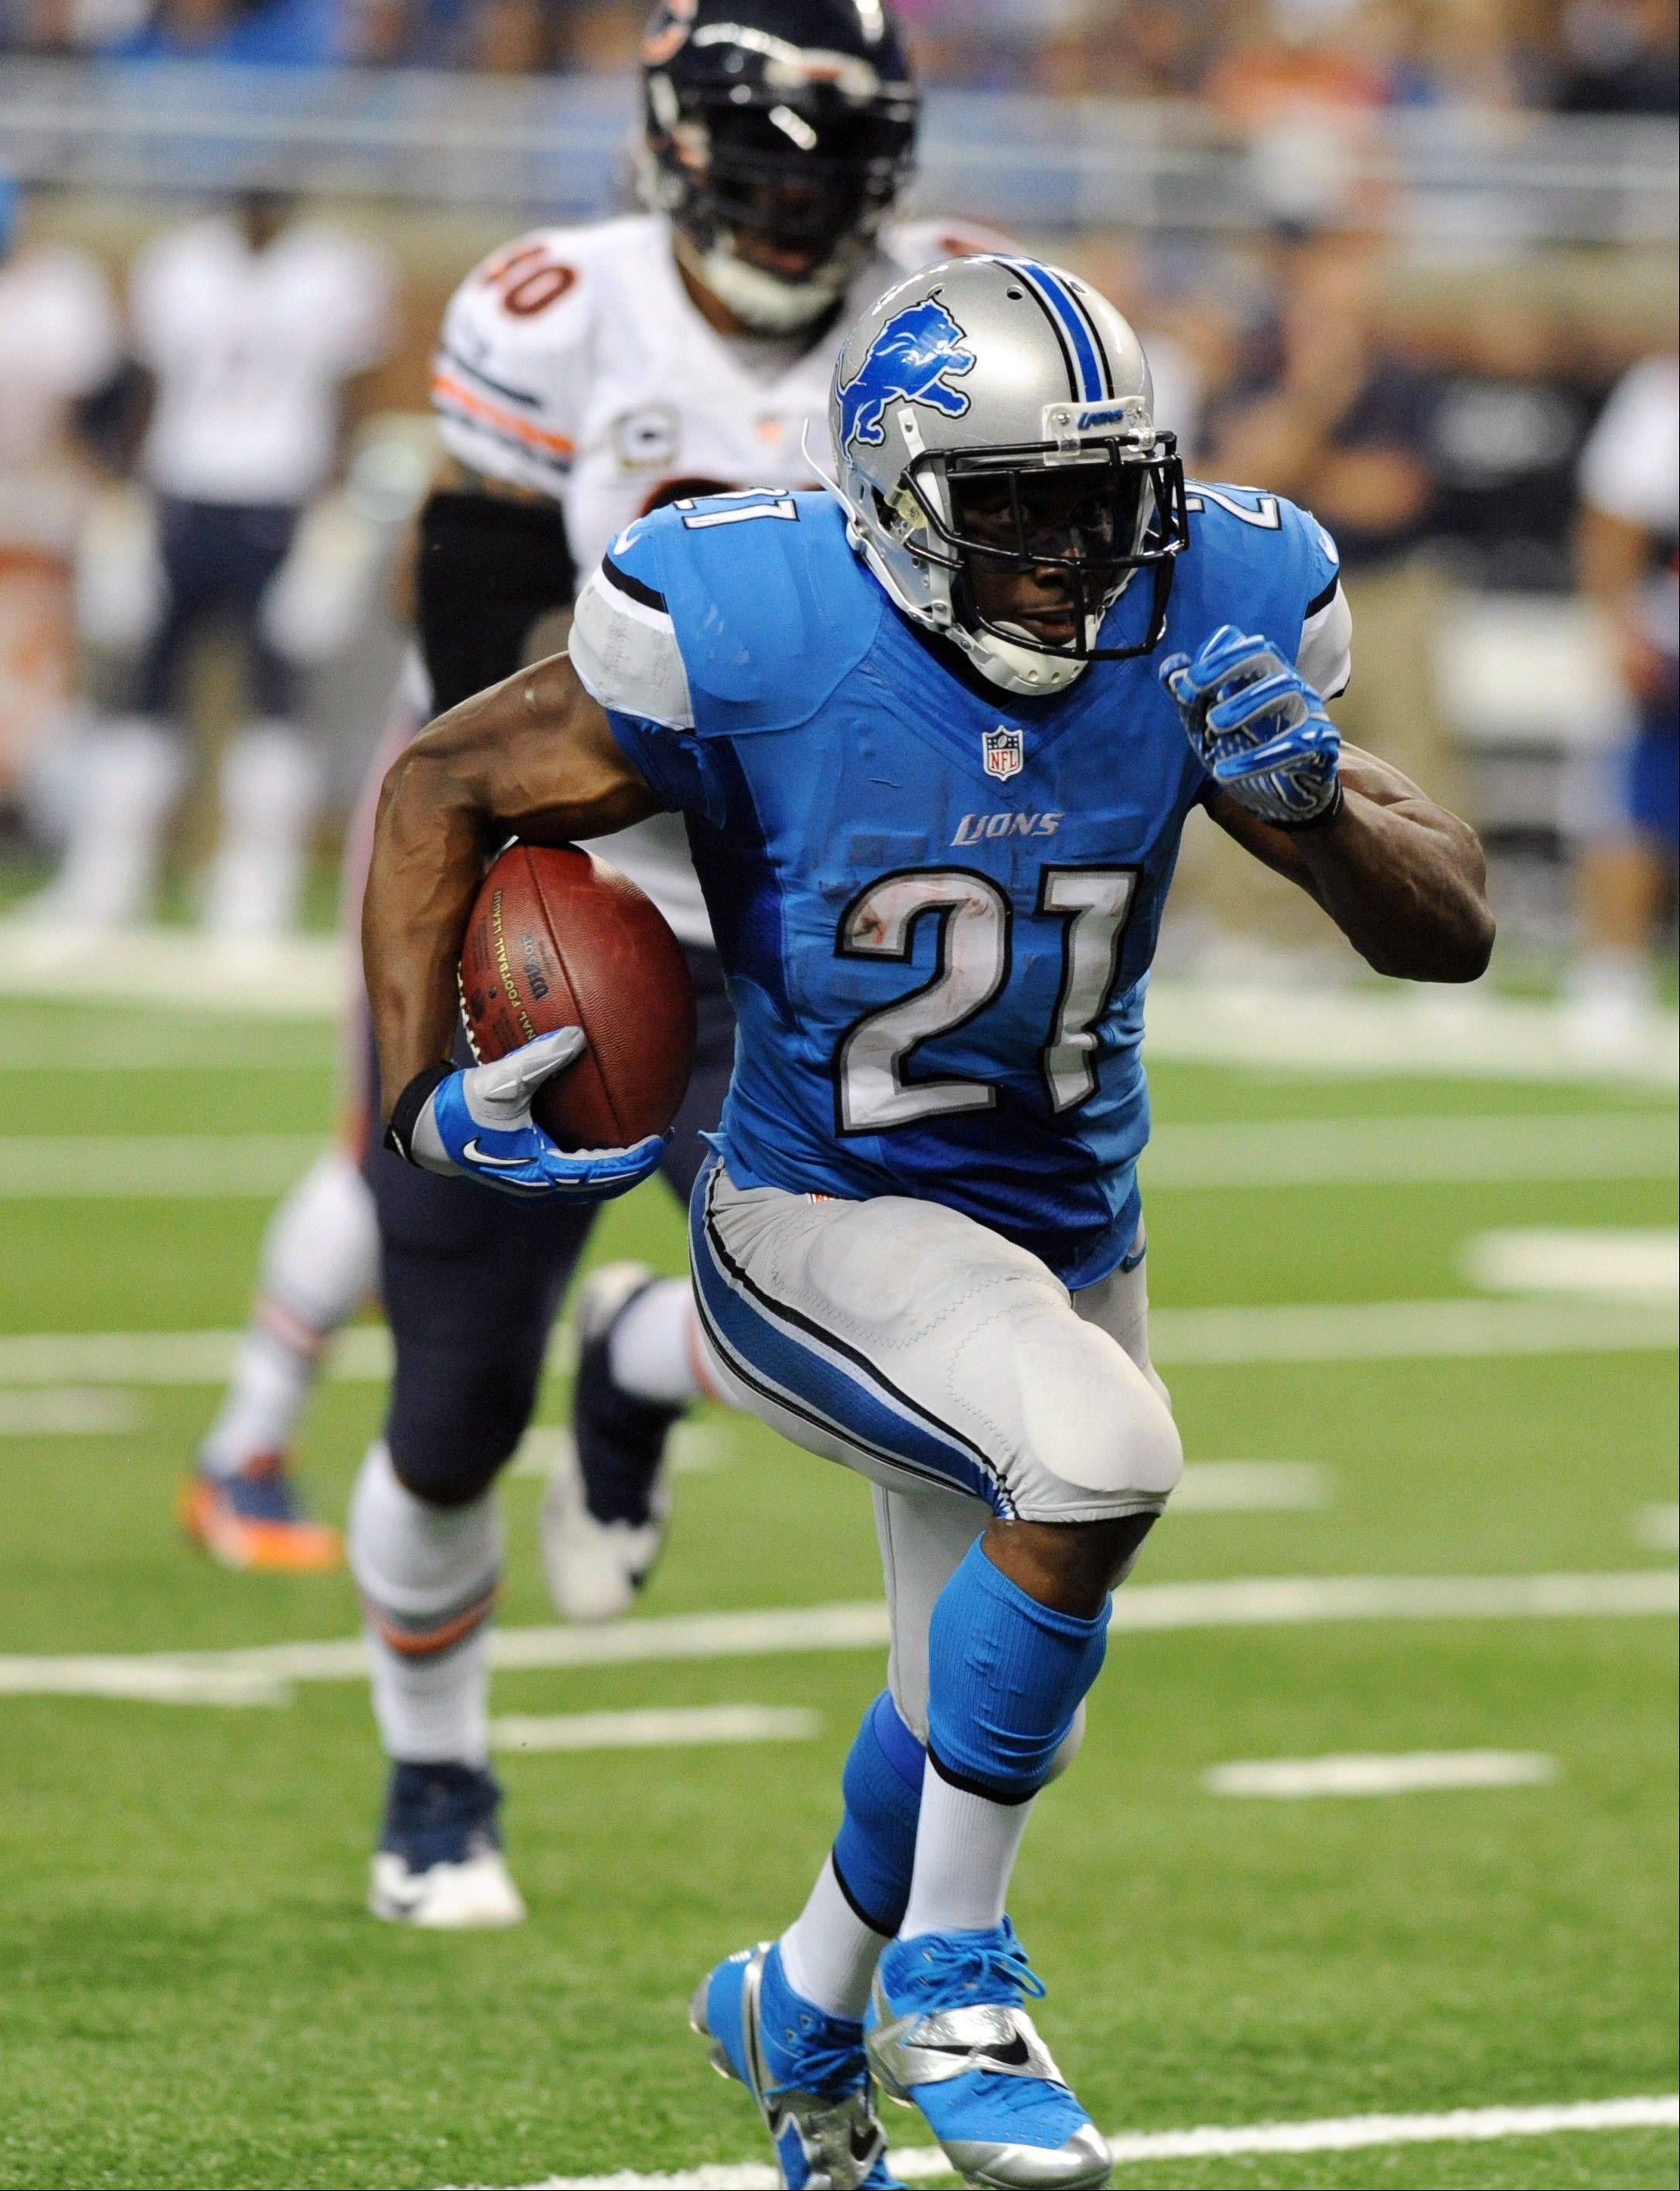 Lions running back Reggie Bush rushed for 103 yards on 9 carries in the first half of Sunday's 40-32 victory over the Bear. Detroit lead 30-13 at halftime.